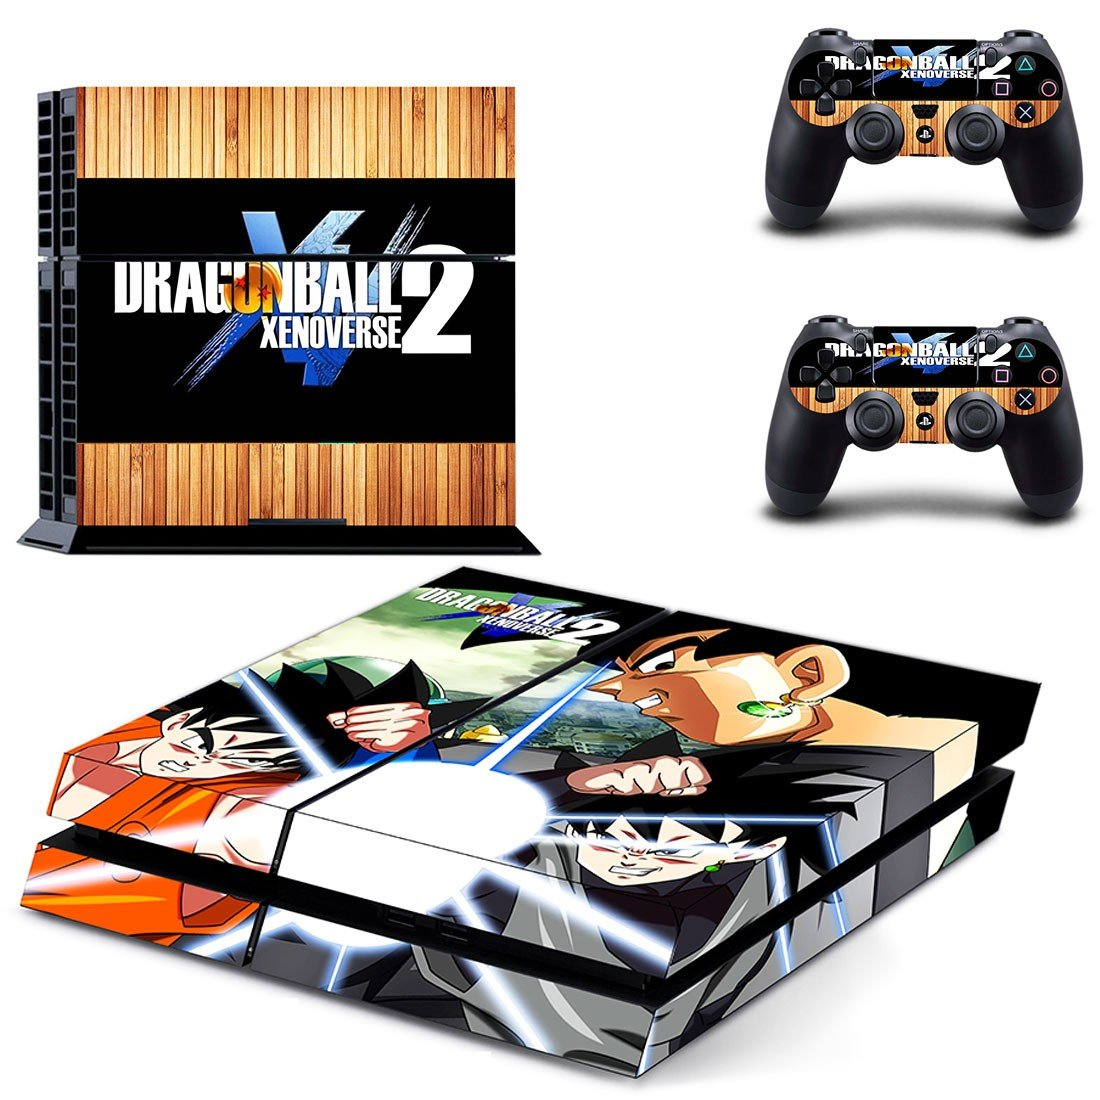 Dragon Ball Xenoverse ps4 skin decal for console and controllers